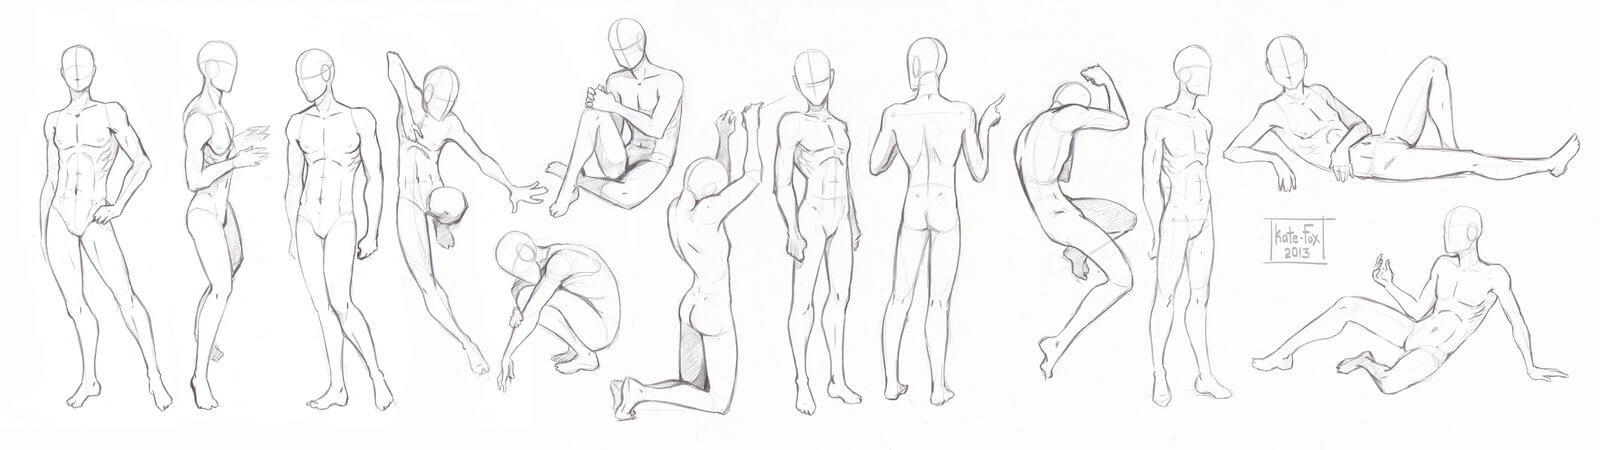 pose_study2_by_kate_fox-d68drby